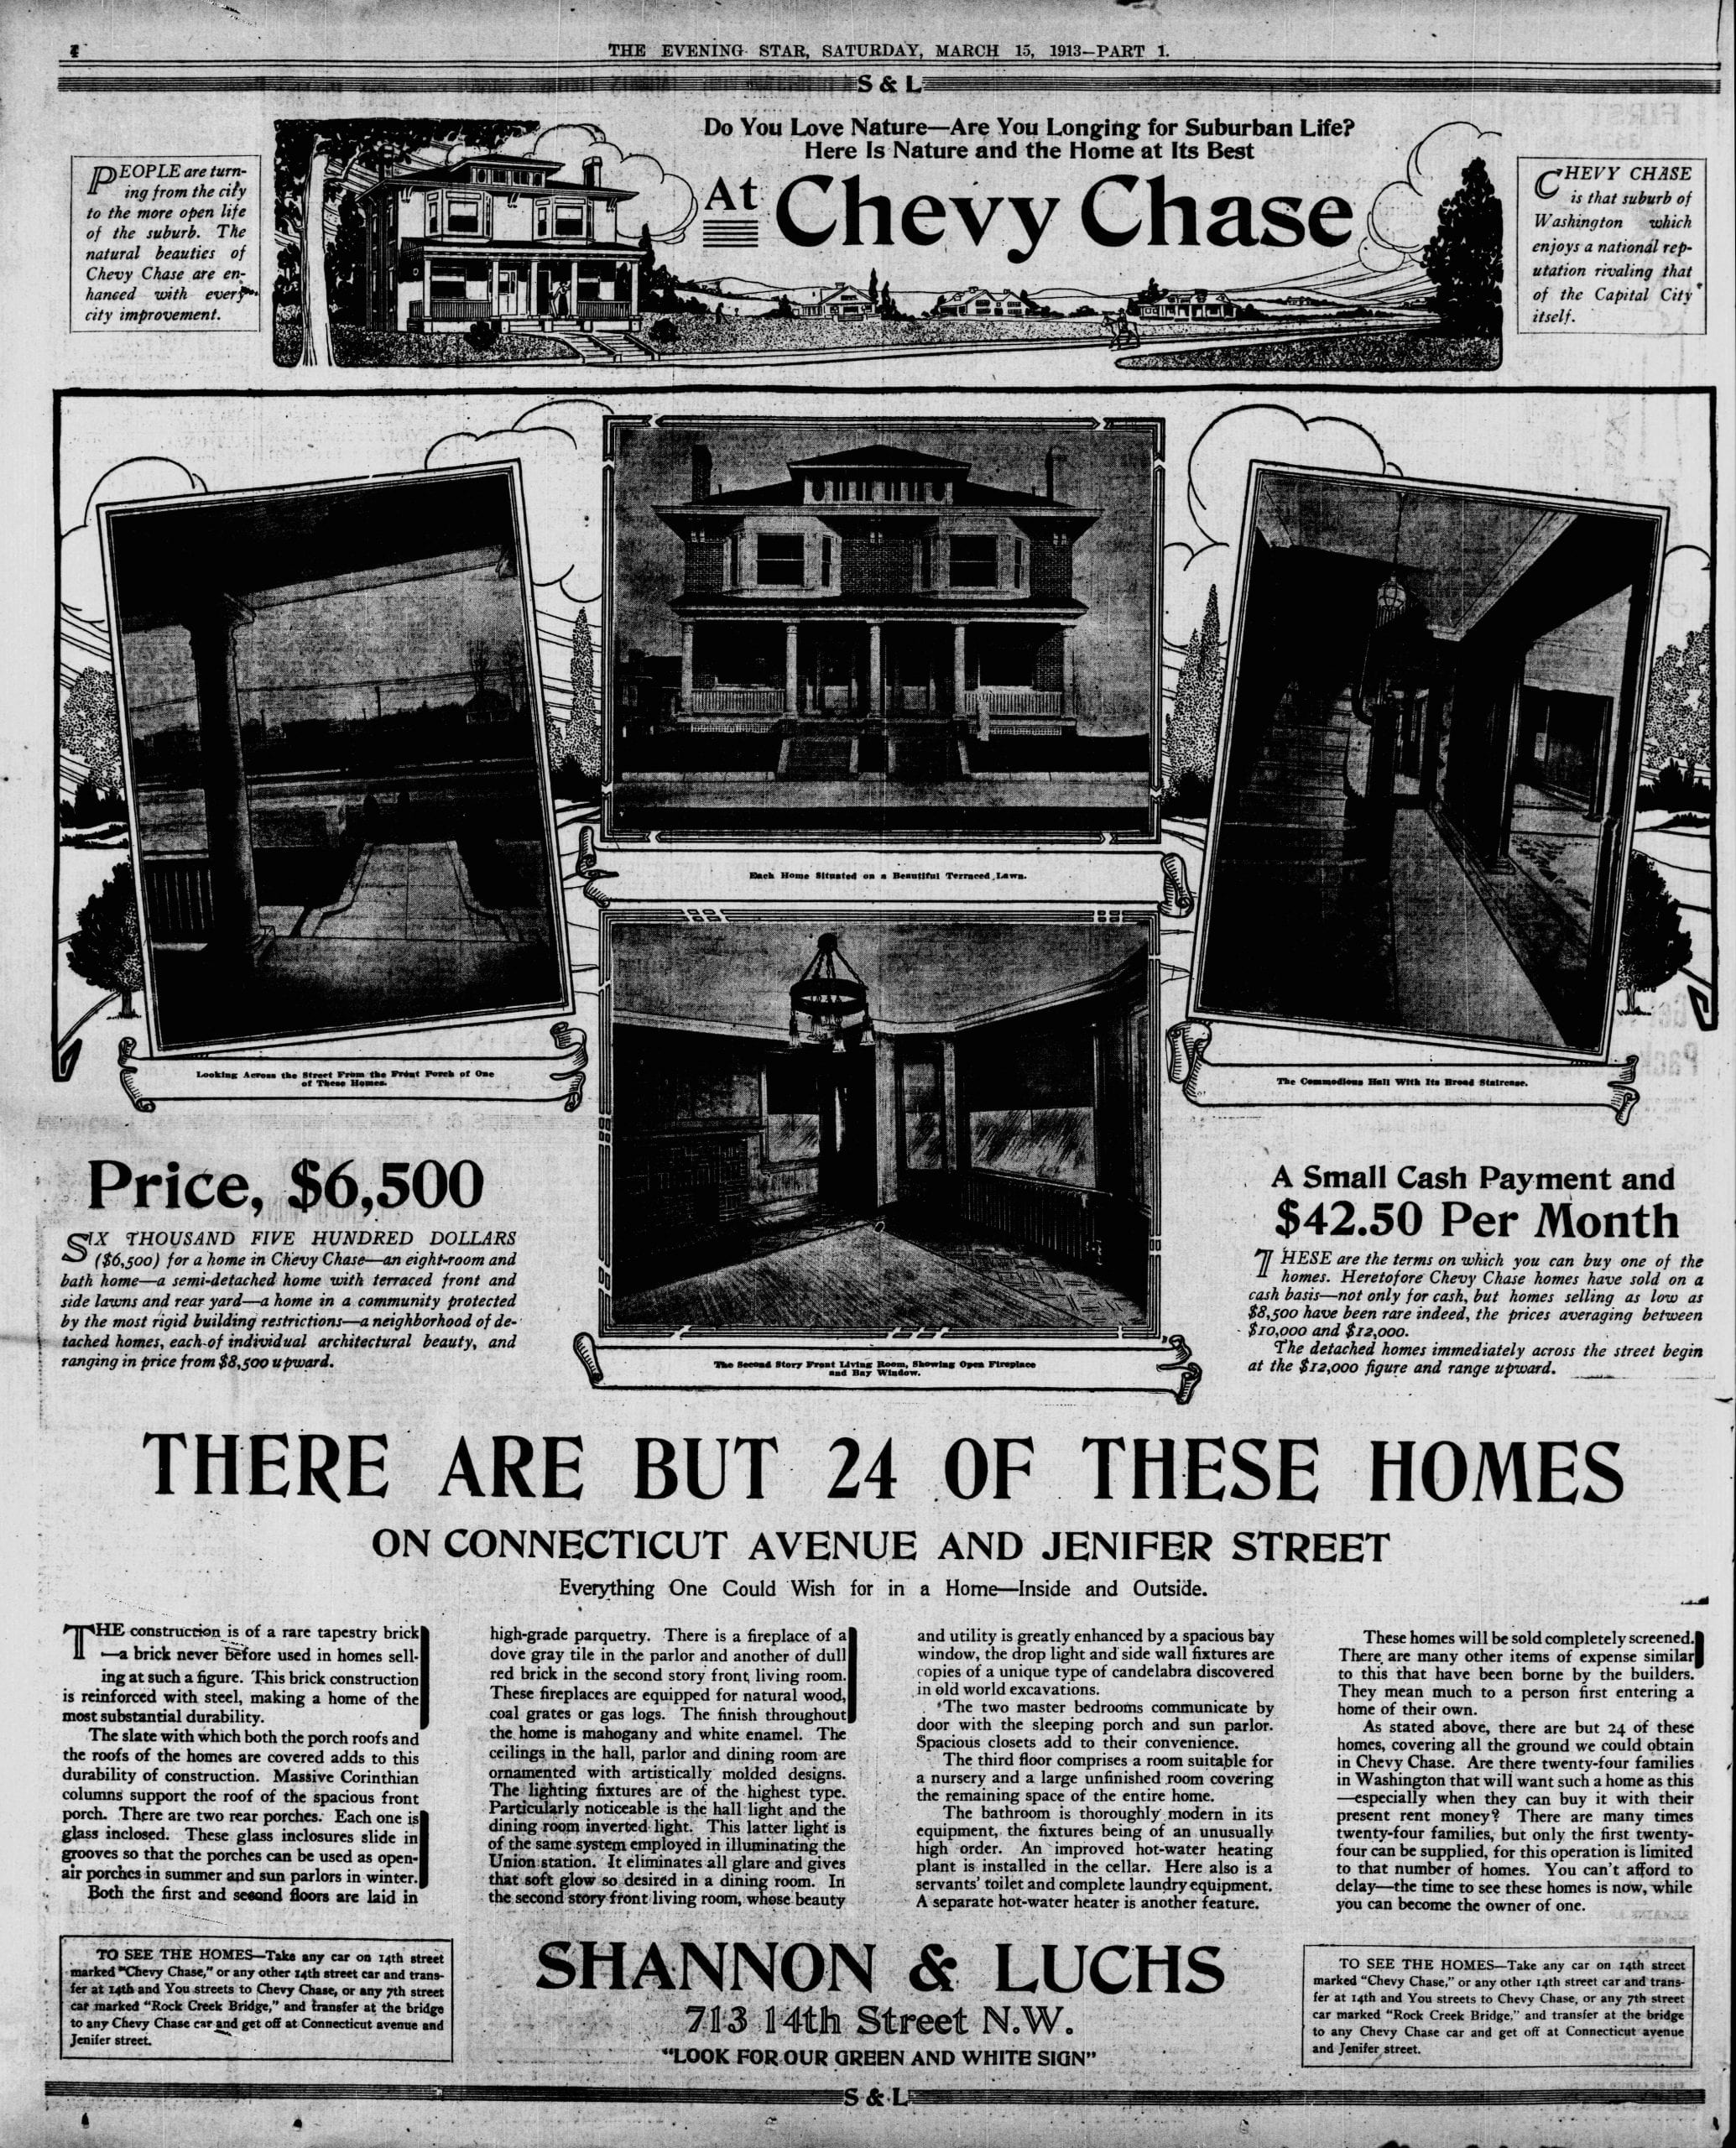 Chevy Chase 1913 Real Estate Advertisement